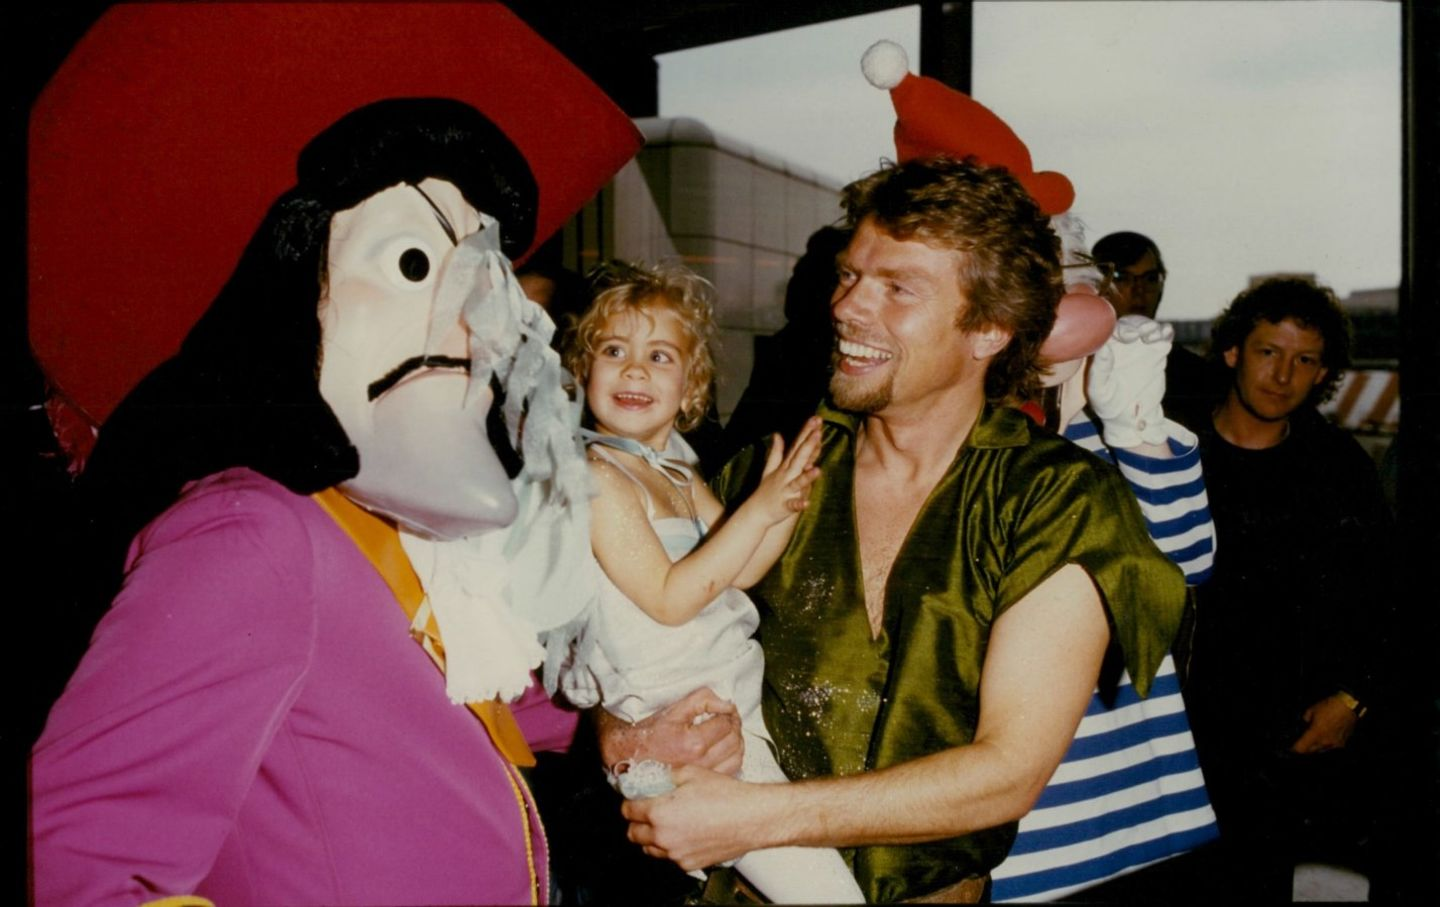 A young Richard Branson dressed up as Peter Pan holds his daughter Holly Branson who is dressed up as Tinkerbell